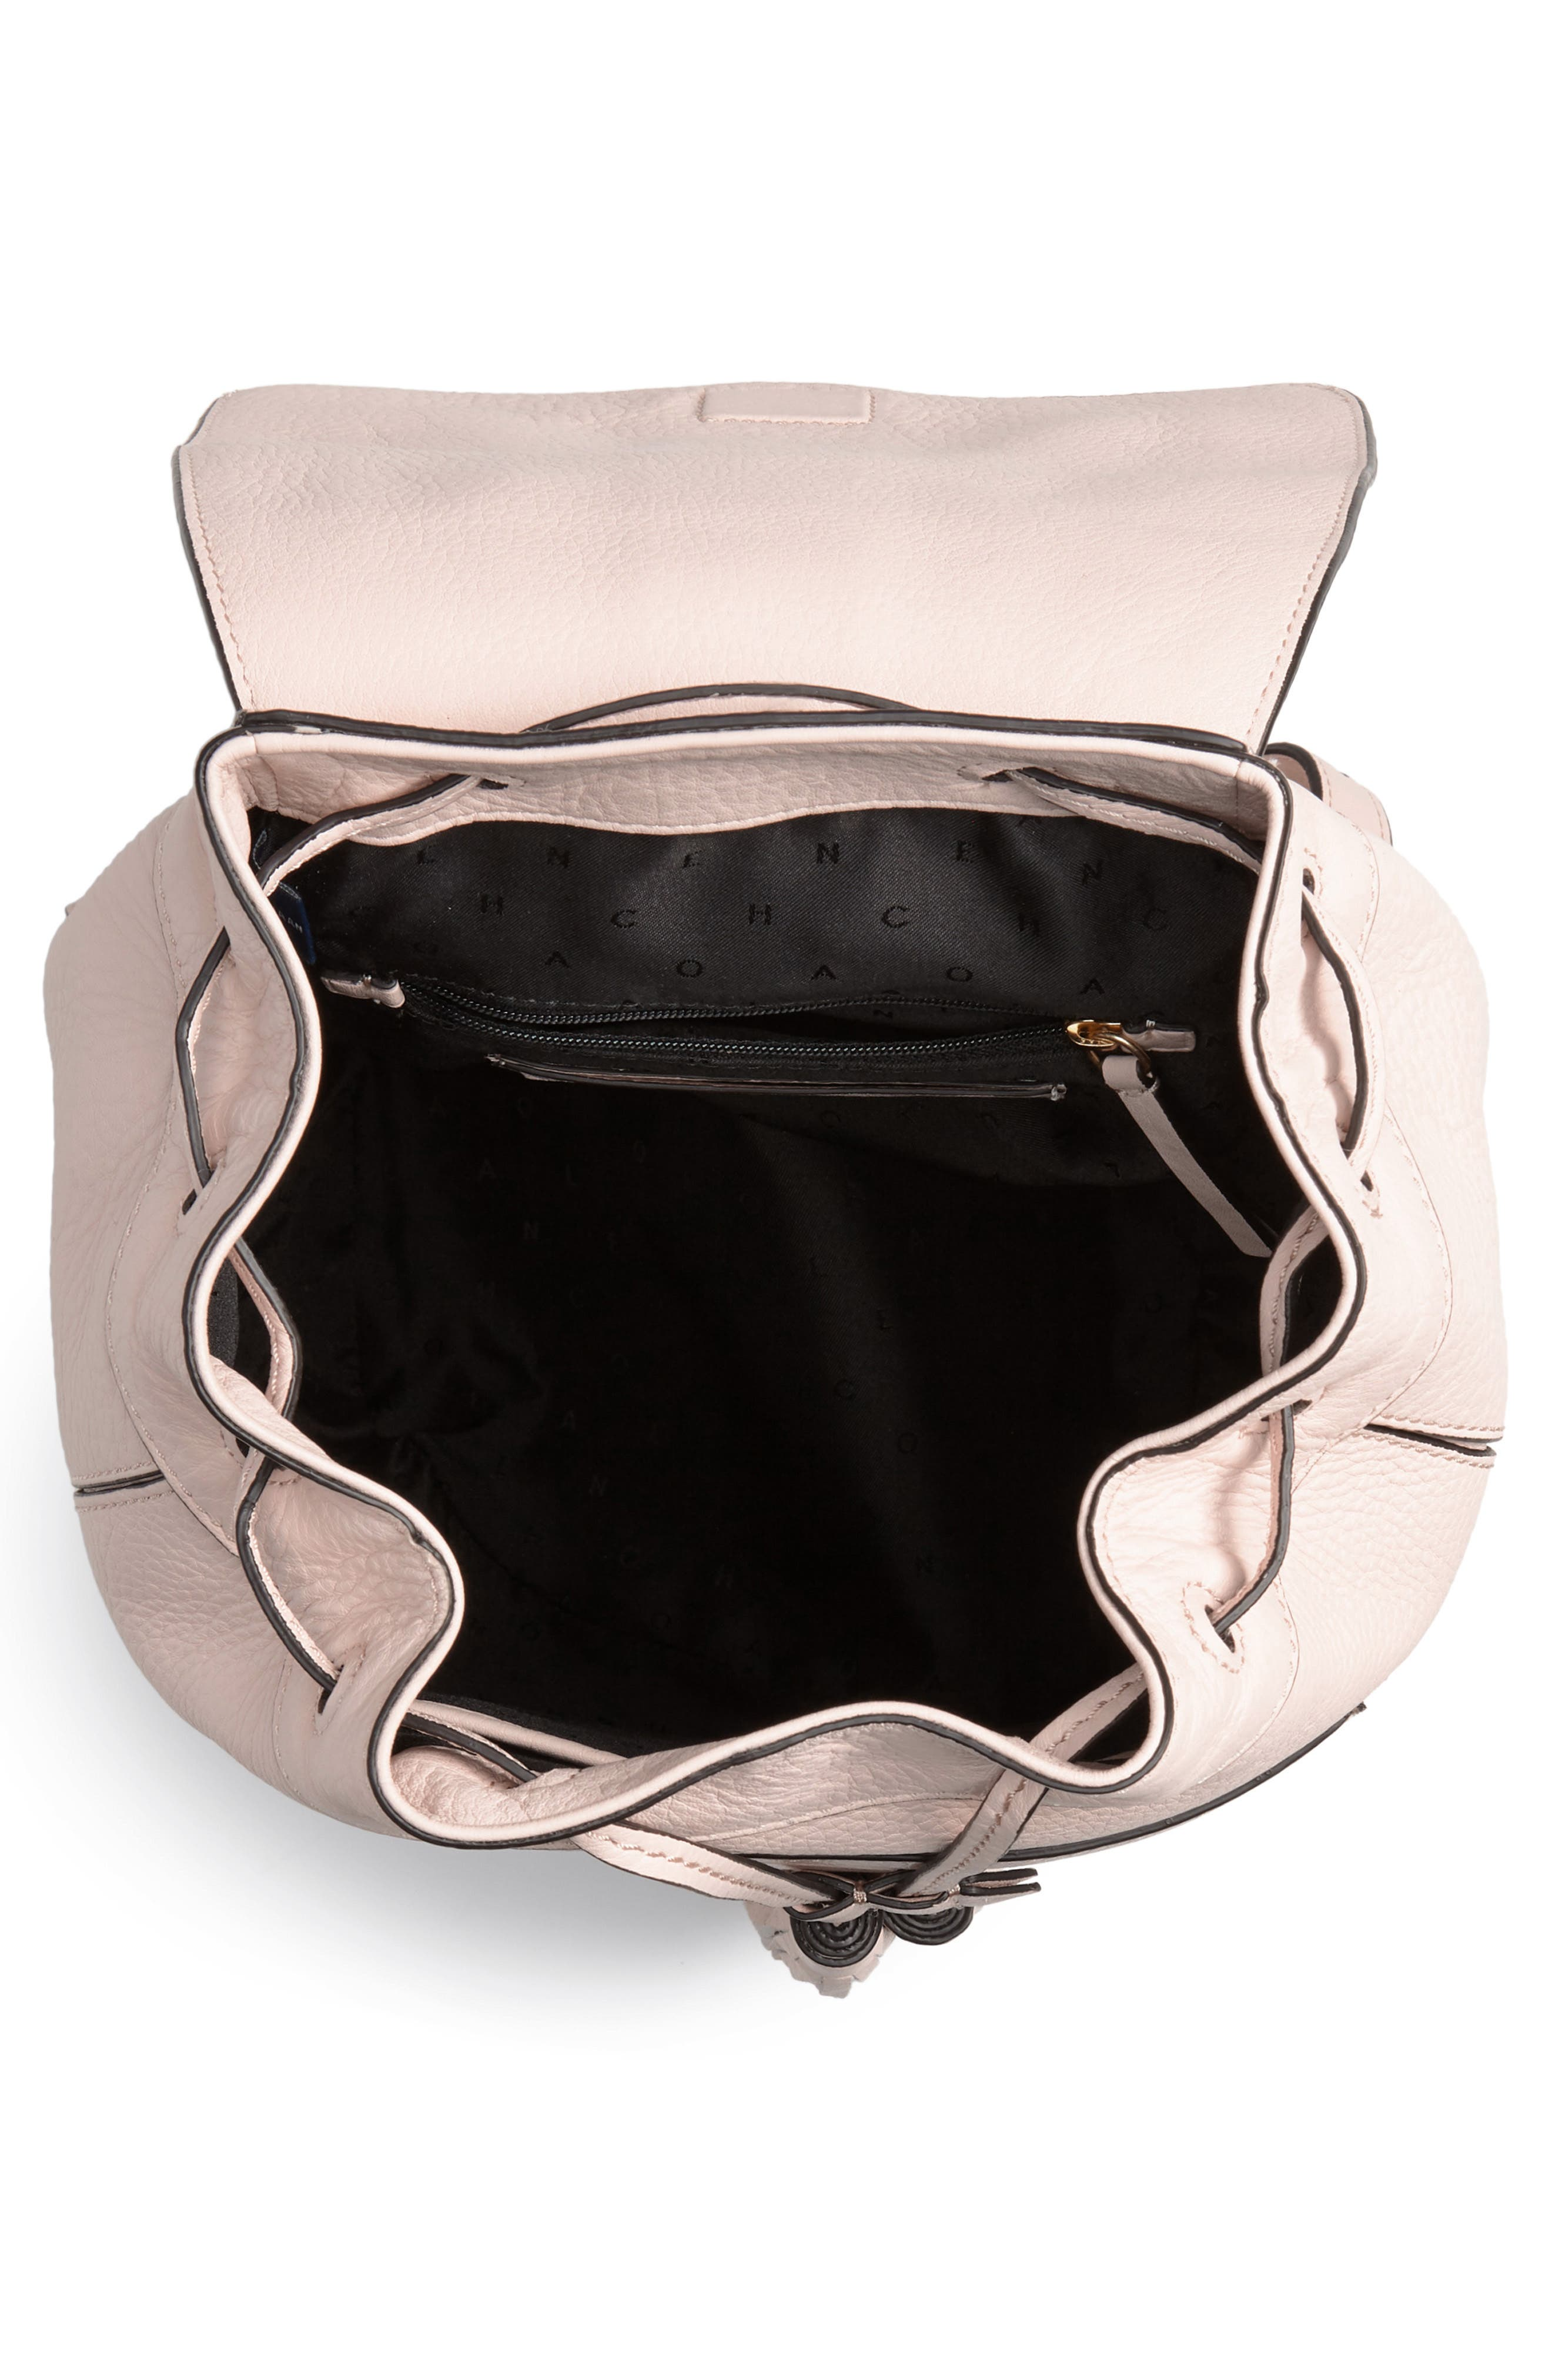 Cassidy RFID Pebbled Leather Backpack,                             Alternate thumbnail 6, color,                             Peach Blush